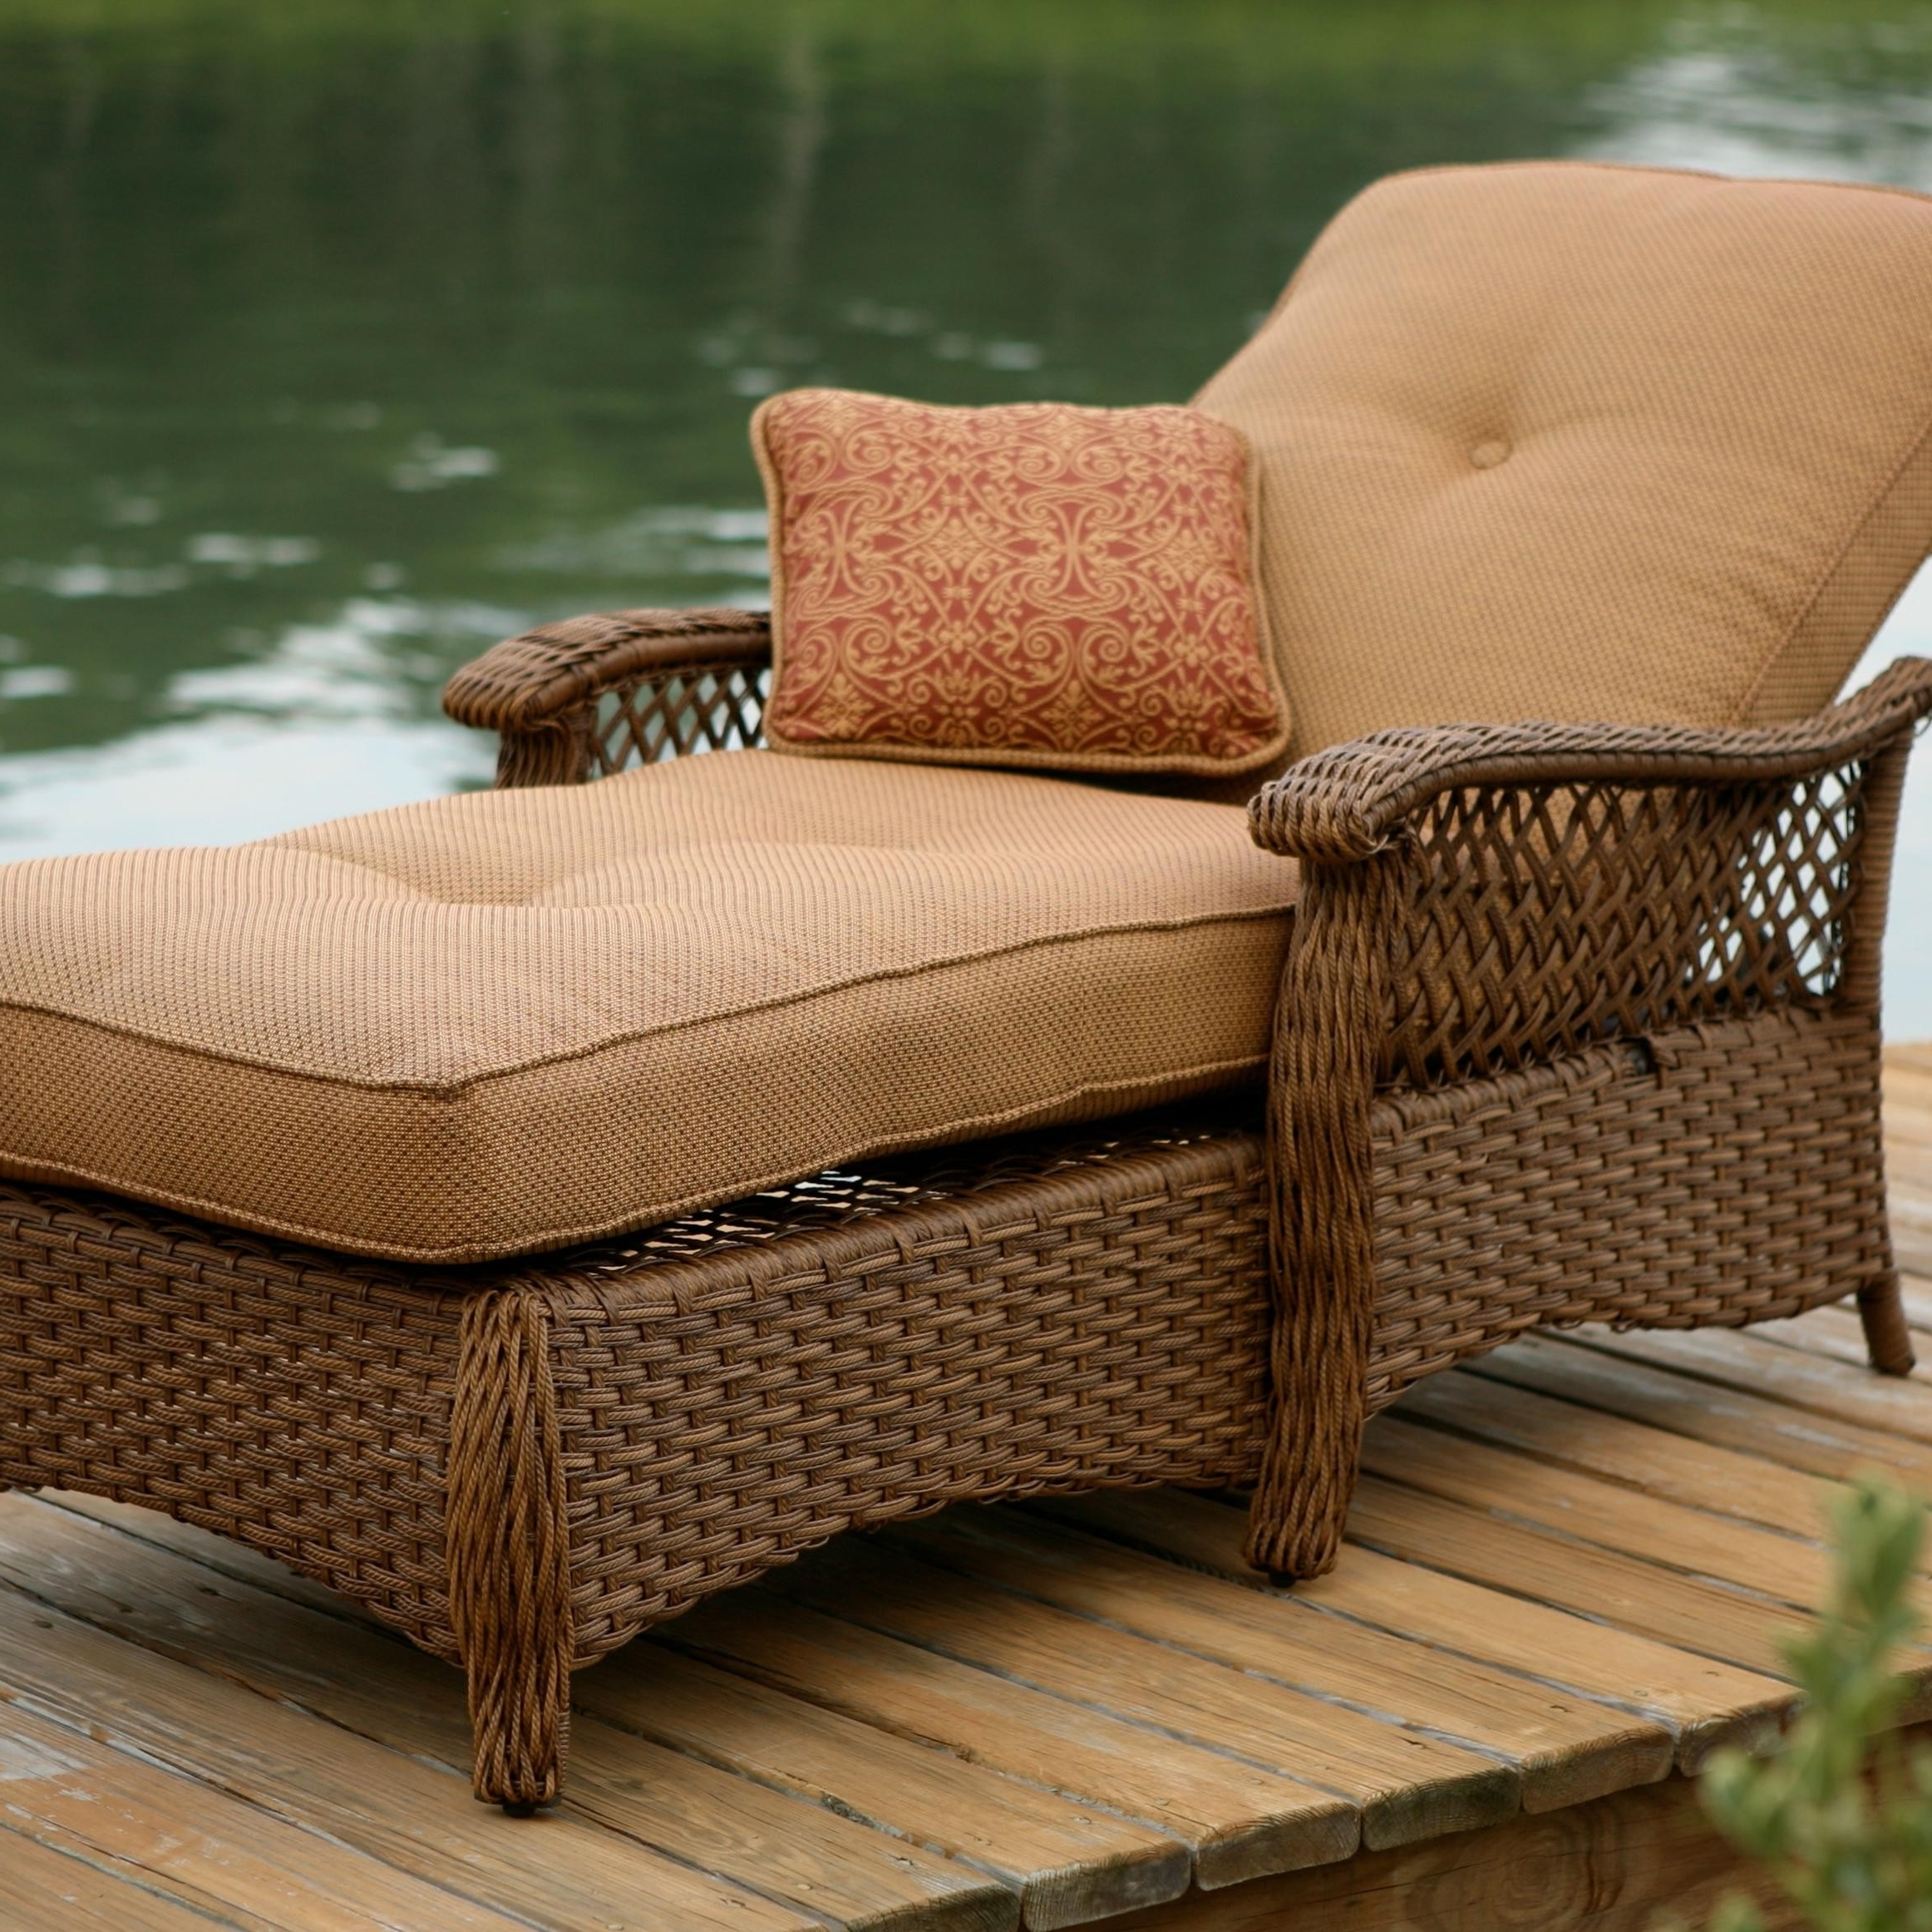 Furniture : 3 Seater Chaise Lounger Chaise Lounge For Sale Ontario For Latest Ontario Chaise Lounges (View 4 of 15)